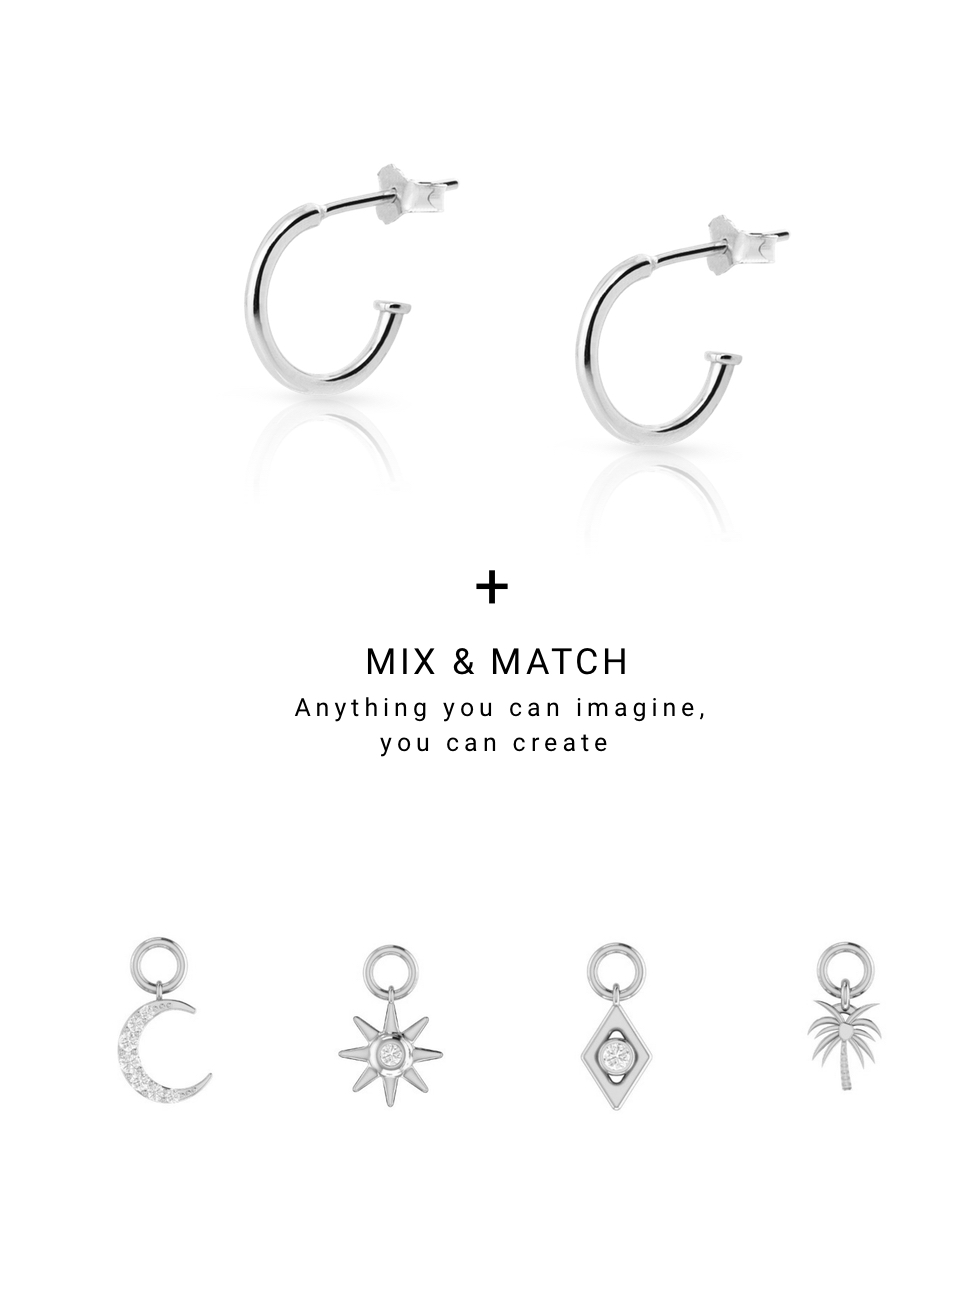 CHARM LUNA silver earrings